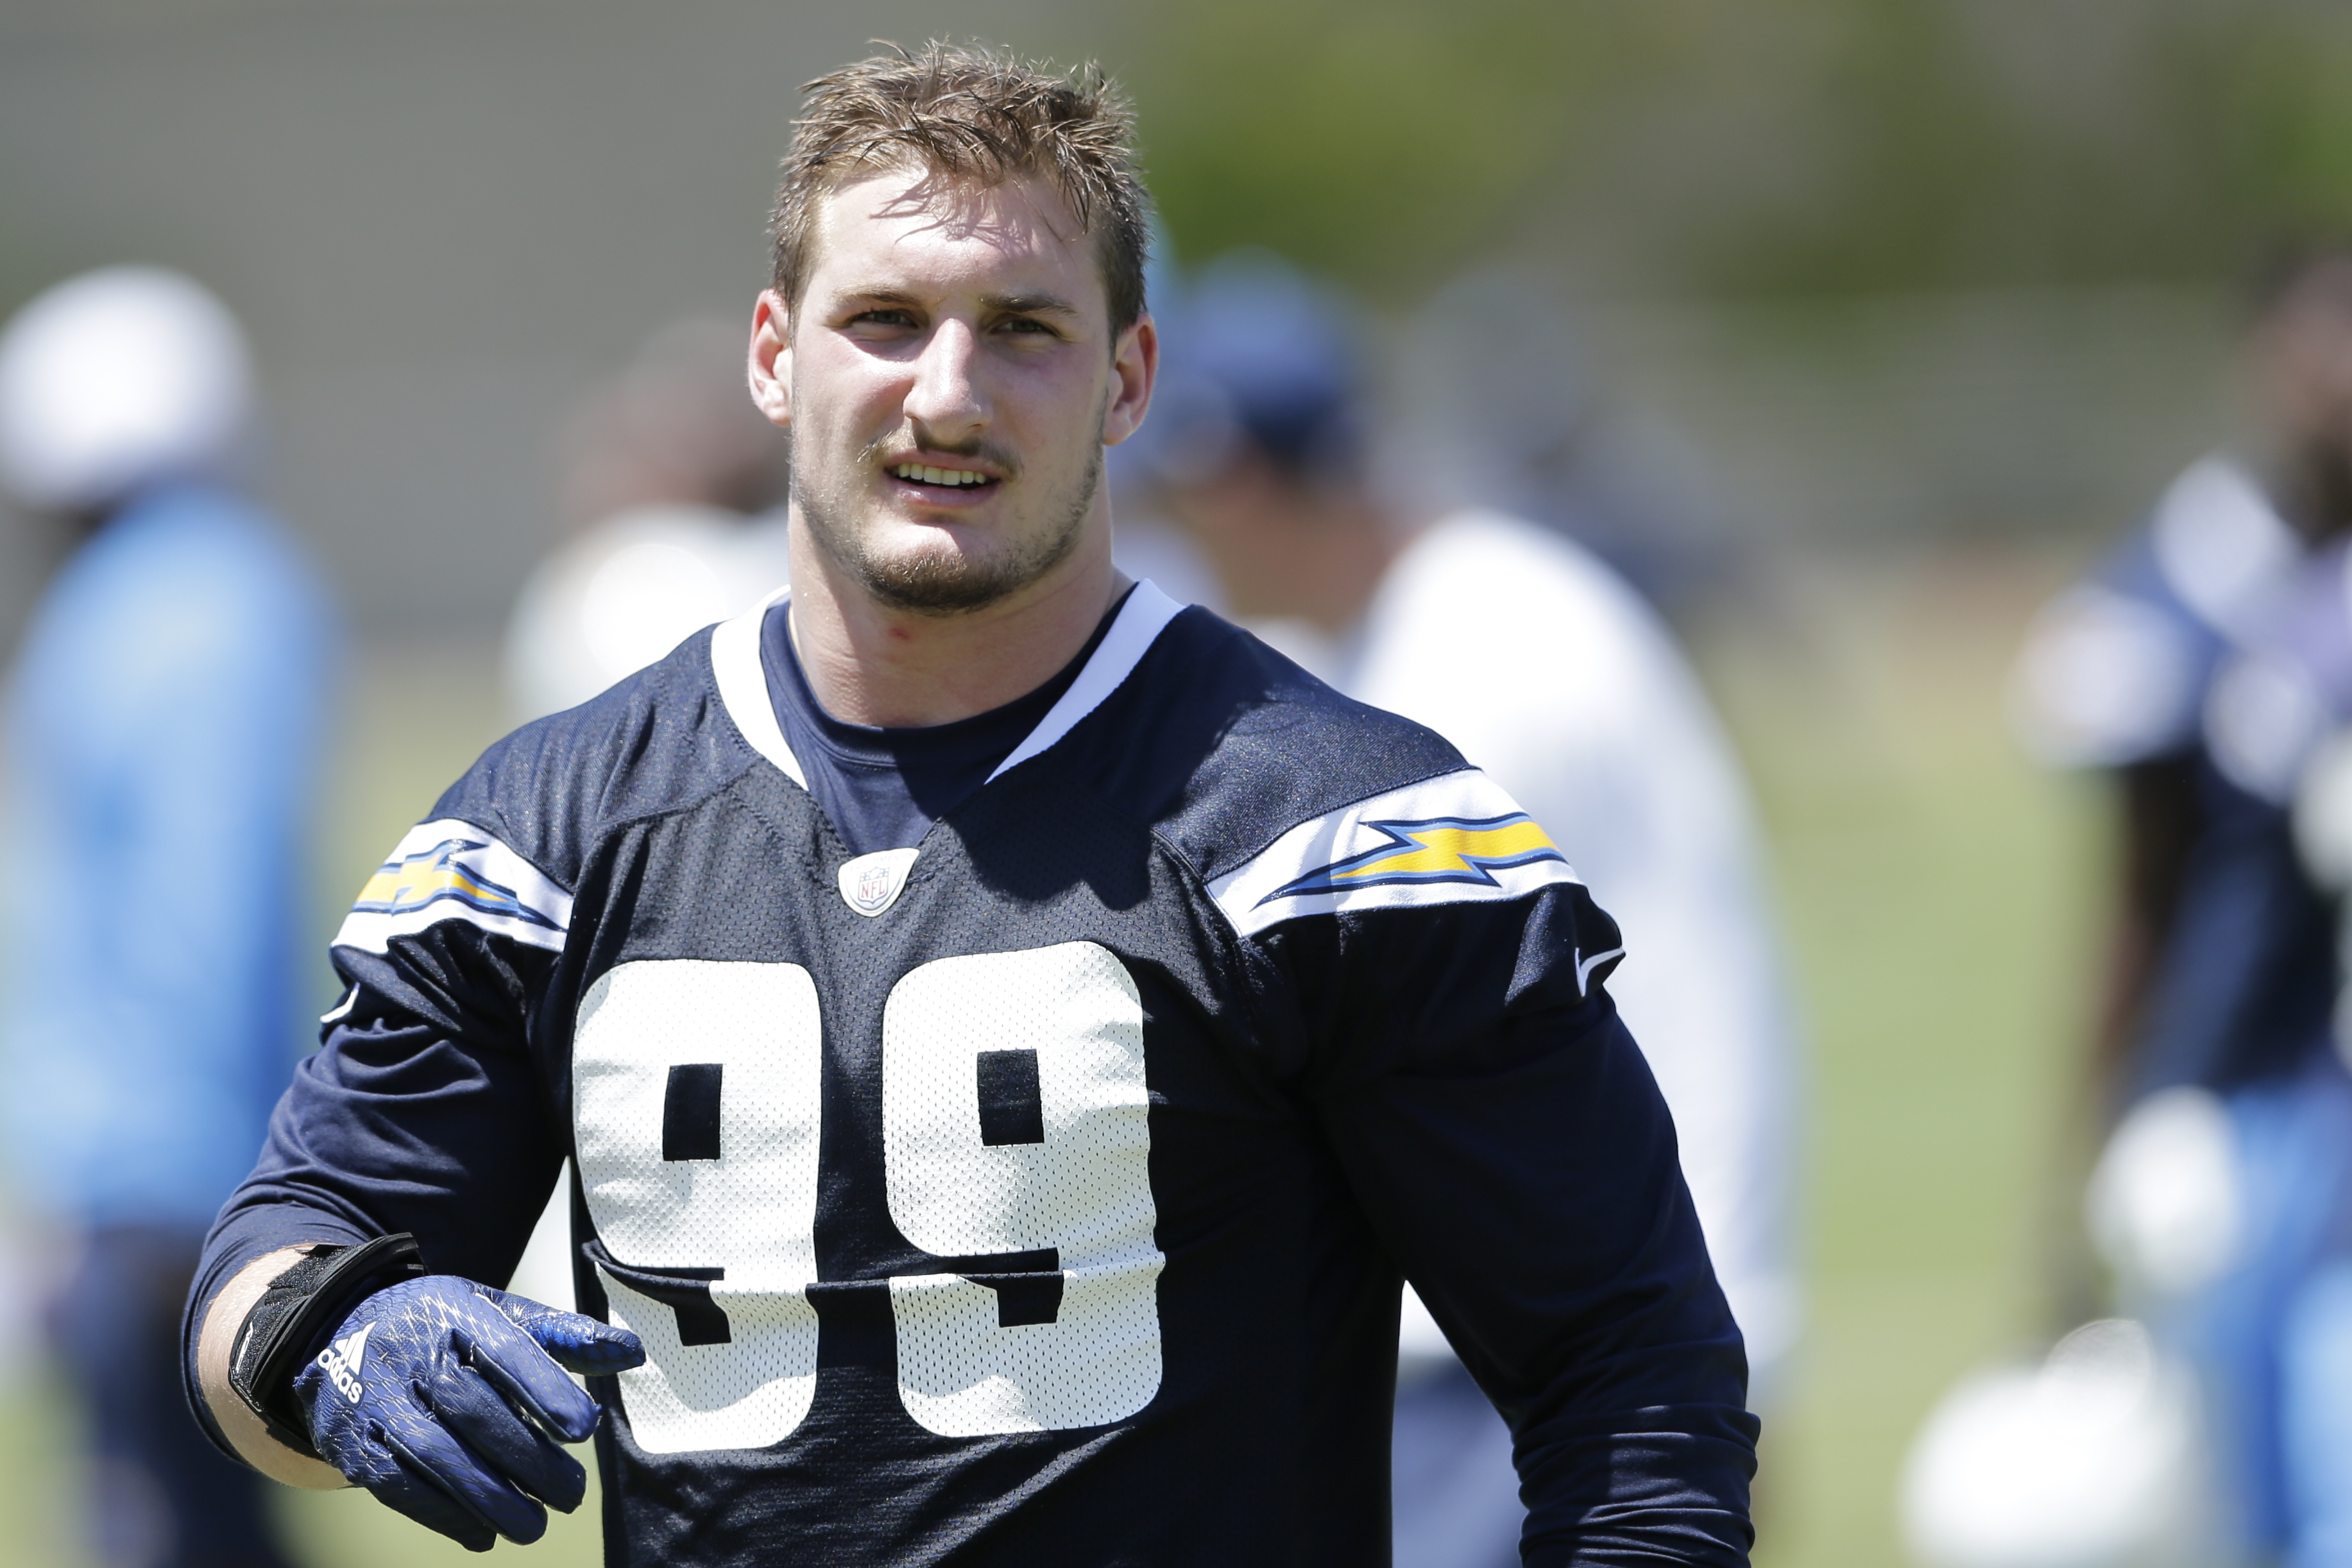 FILE - In this May 13, 2016, file photo, San Diego Chargers rookie defensive end Joey Bosa trains during an NFL football rookie training camp in San Diego. The Chargers have withdrawn their contract offer to first-round draft pick Joey Bosa and will restr